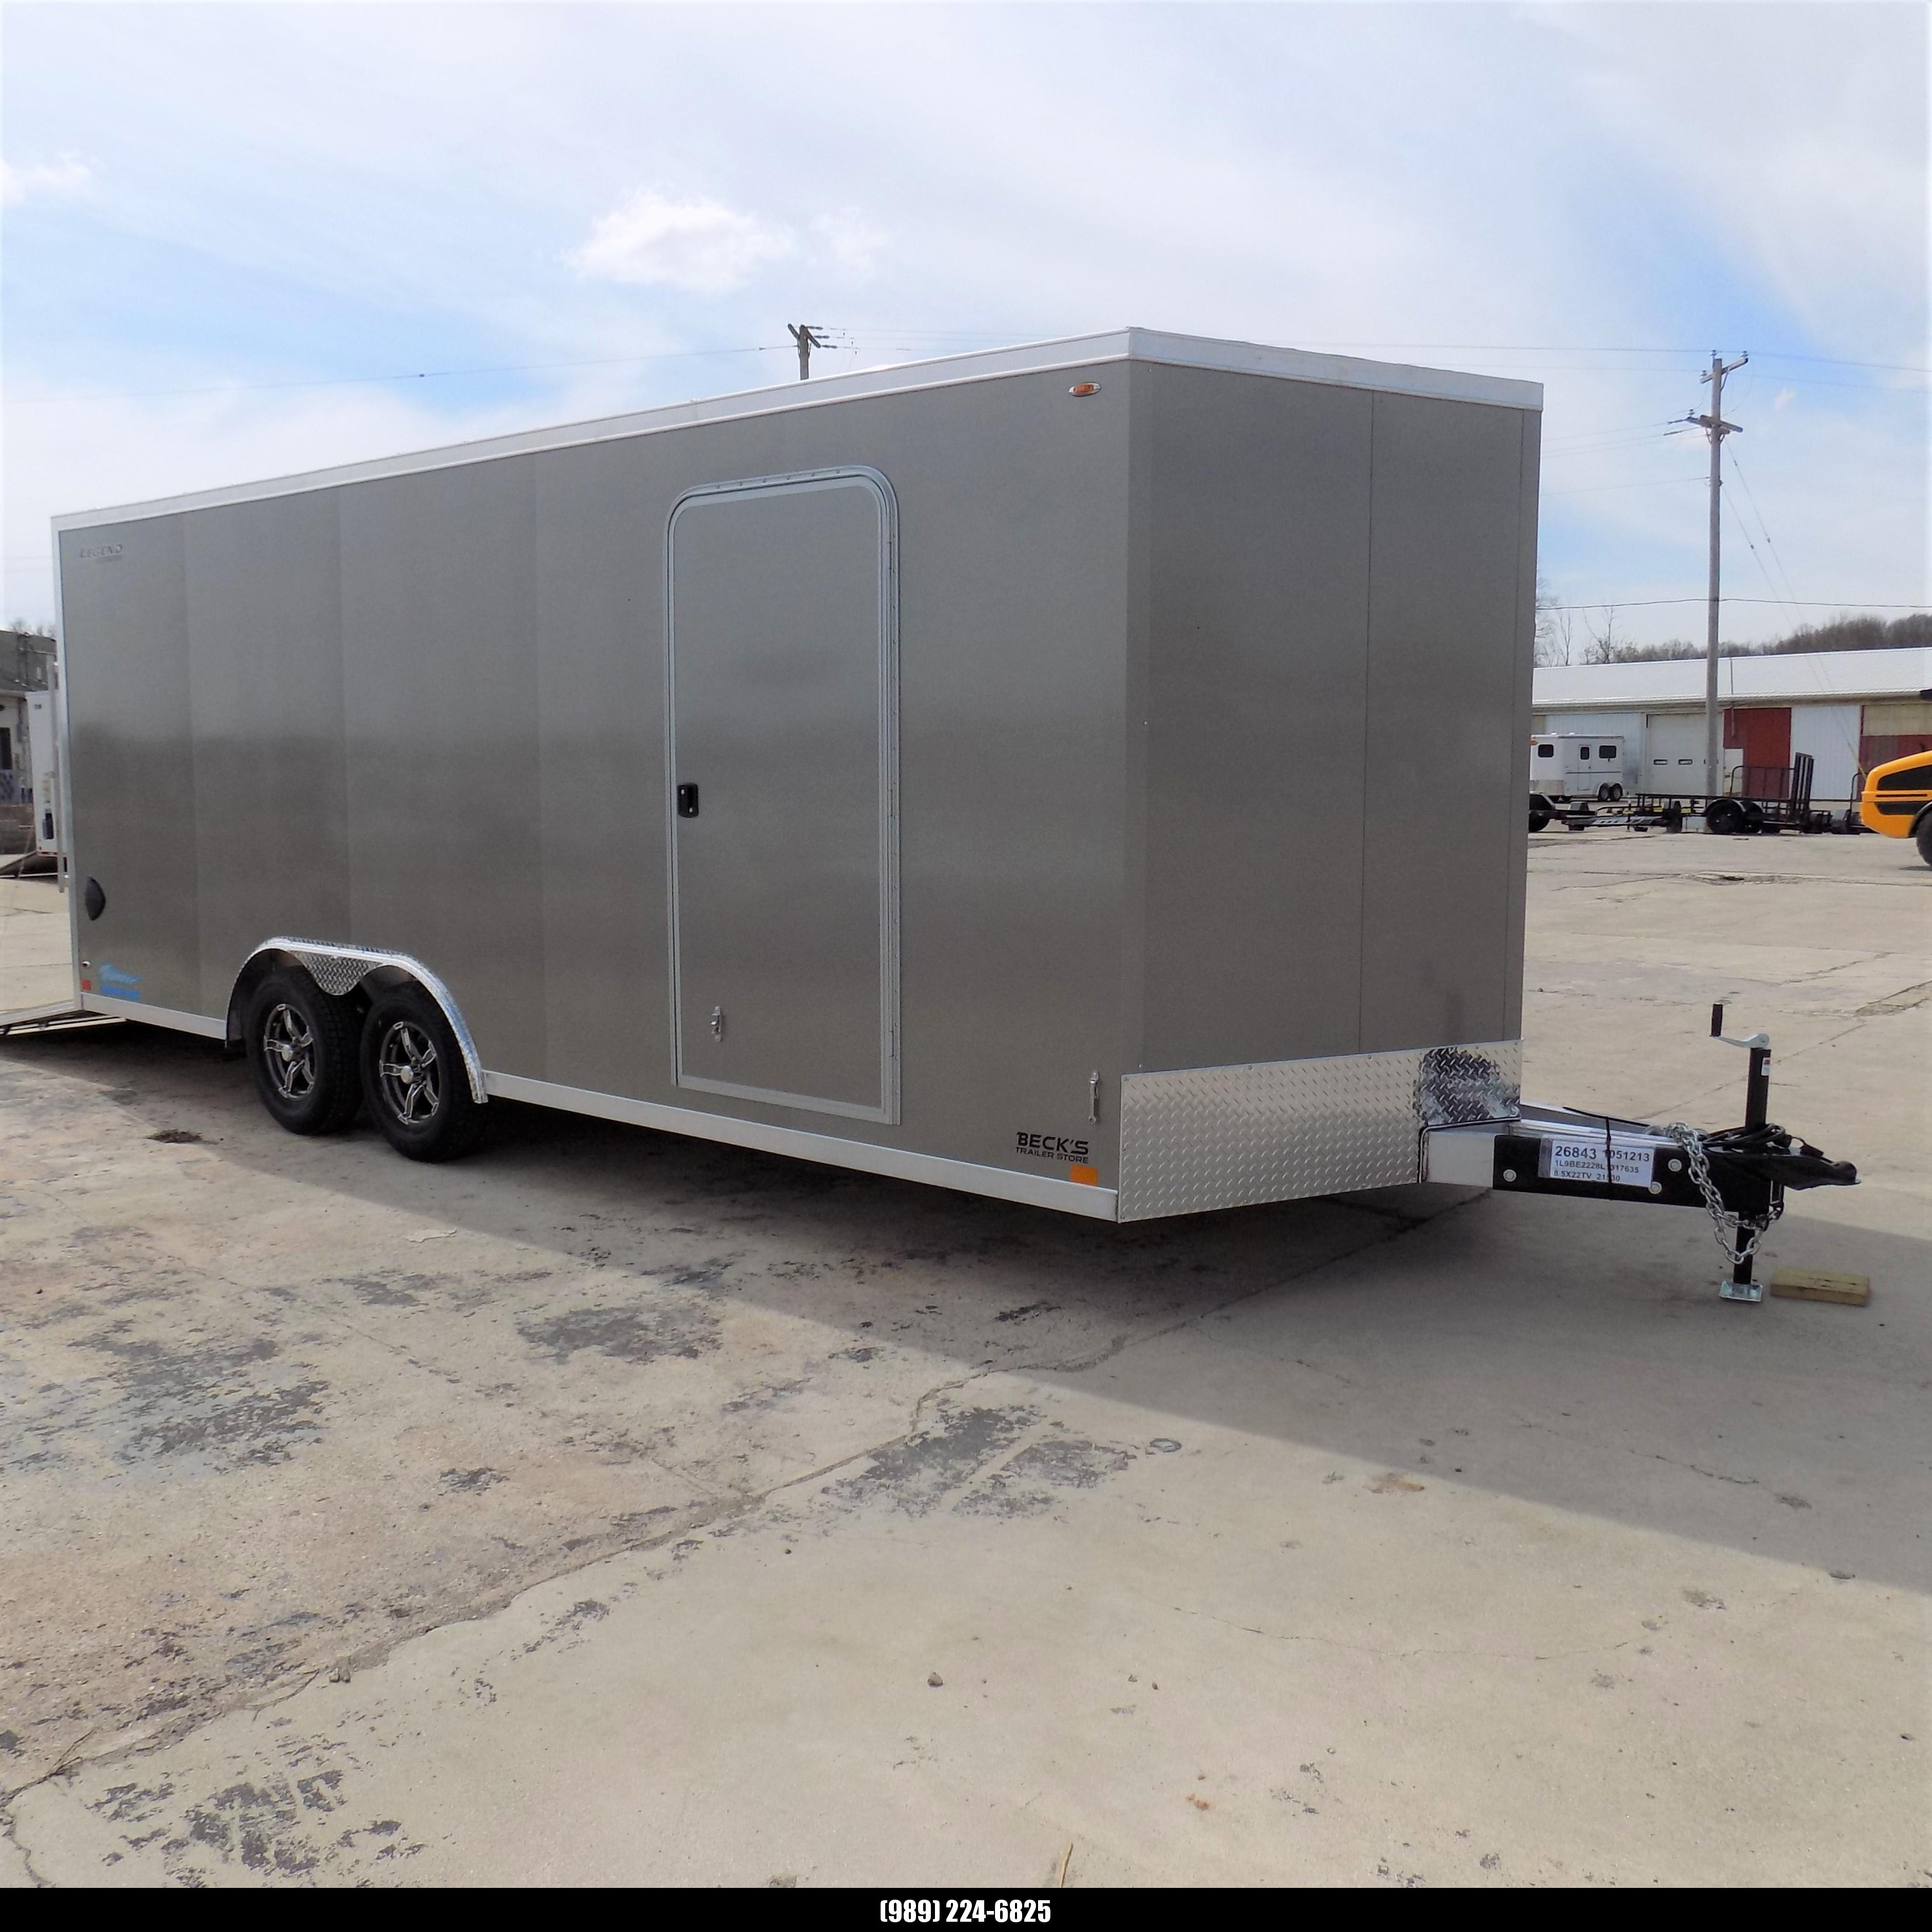 New Legend Thunder 8.5' X 22' All Aluminum Enclosed Cargo Trailer-$0 Down Payments From $123/mo W.A.C.